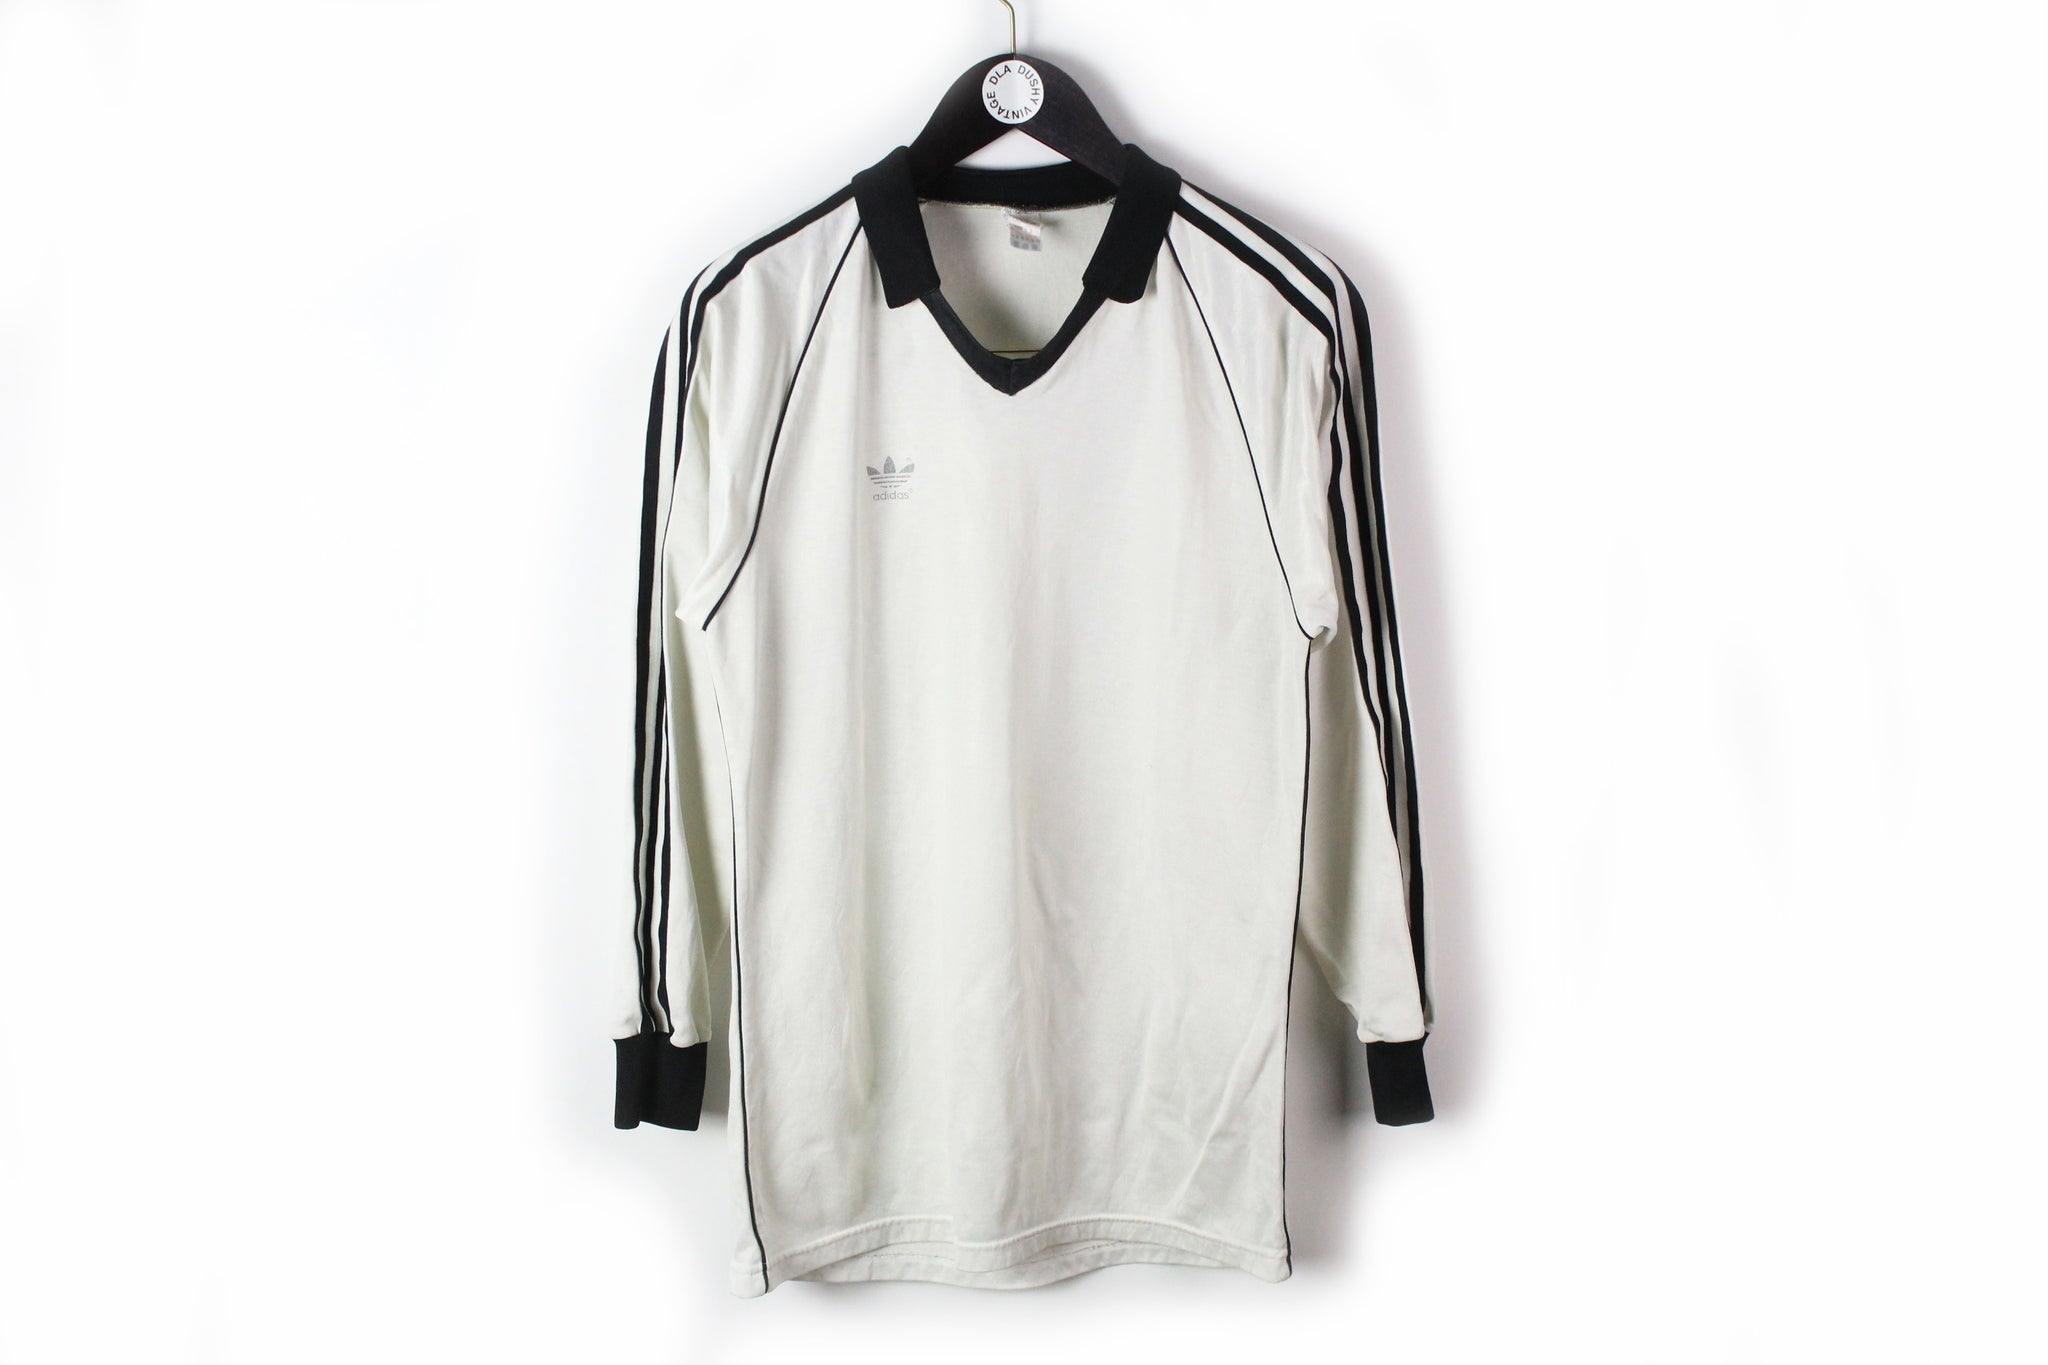 Vintage Adidas Long Sleeve Jersey T-Shirt Medium white black 13 Germany national team football tee